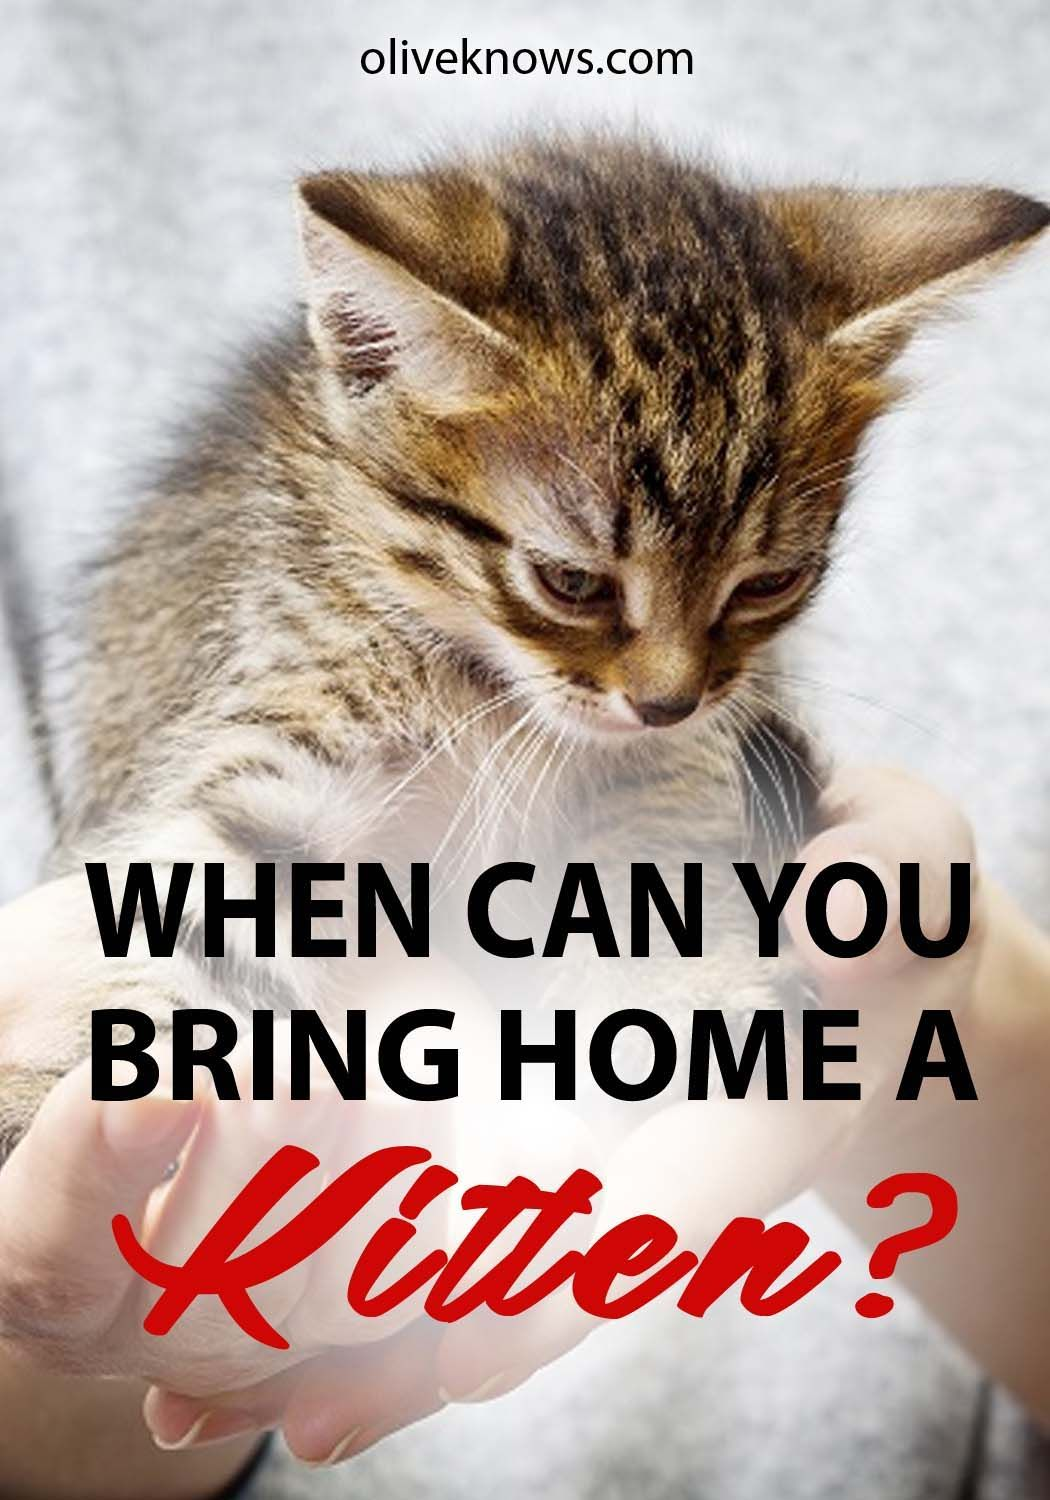 When Can You Bring Home A Kitten Oliveknows Cat Care Tips Pet Insurance For Dogs Cats